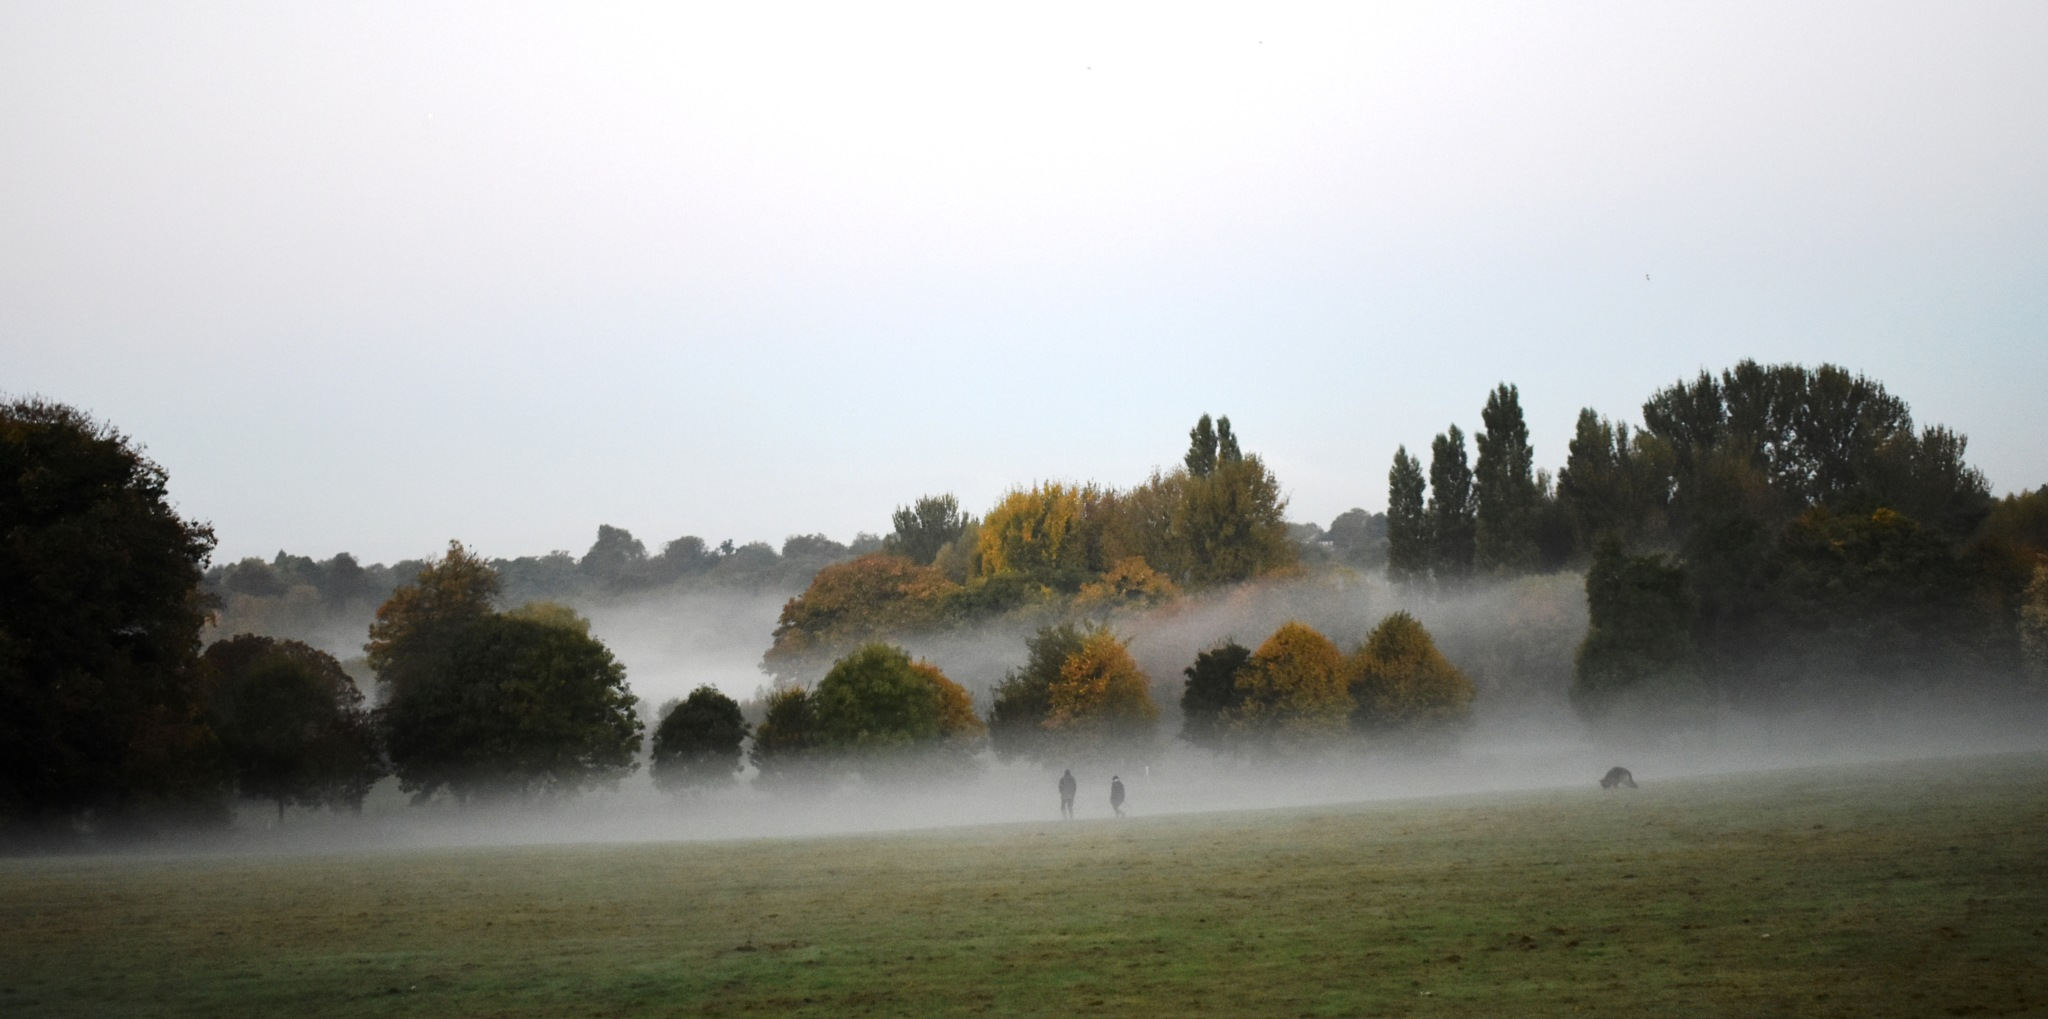 A misty morning at Footscray Meadow by Stephen Ashdown